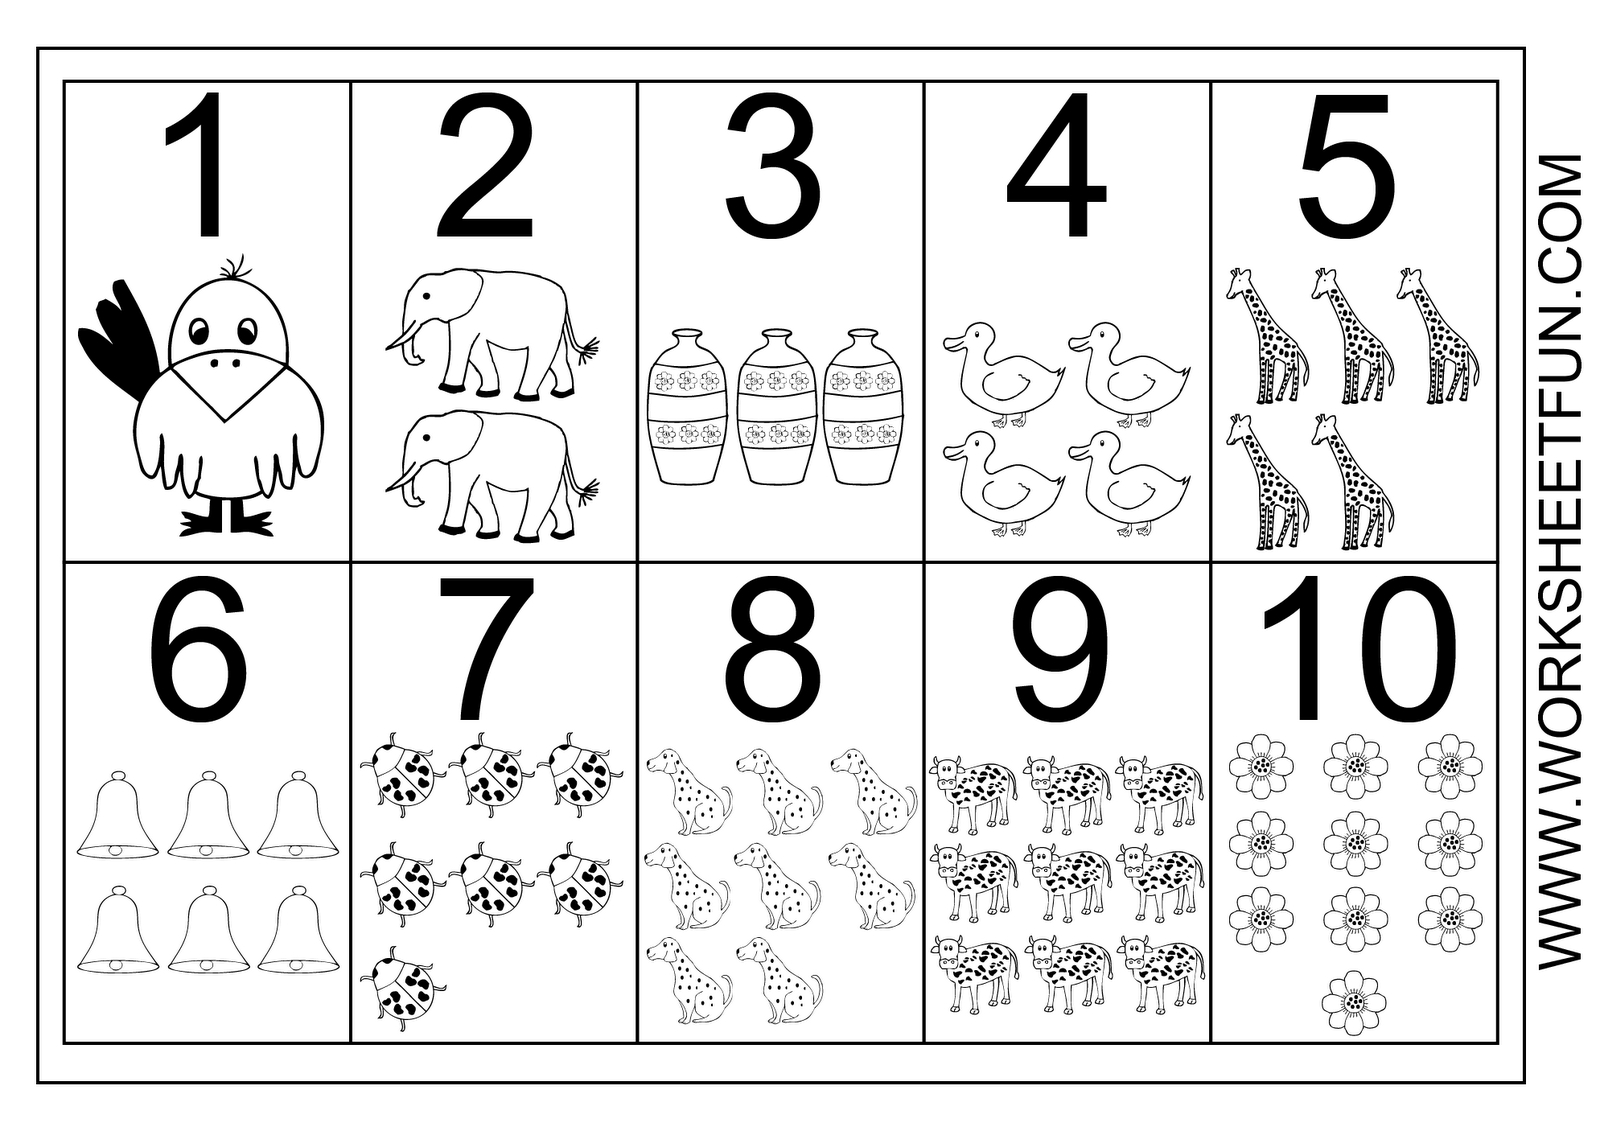 Worksheetfun - Free Printable Worksheets | Prek Math Ideas | Numbers - Free Printable Numbers 1 10